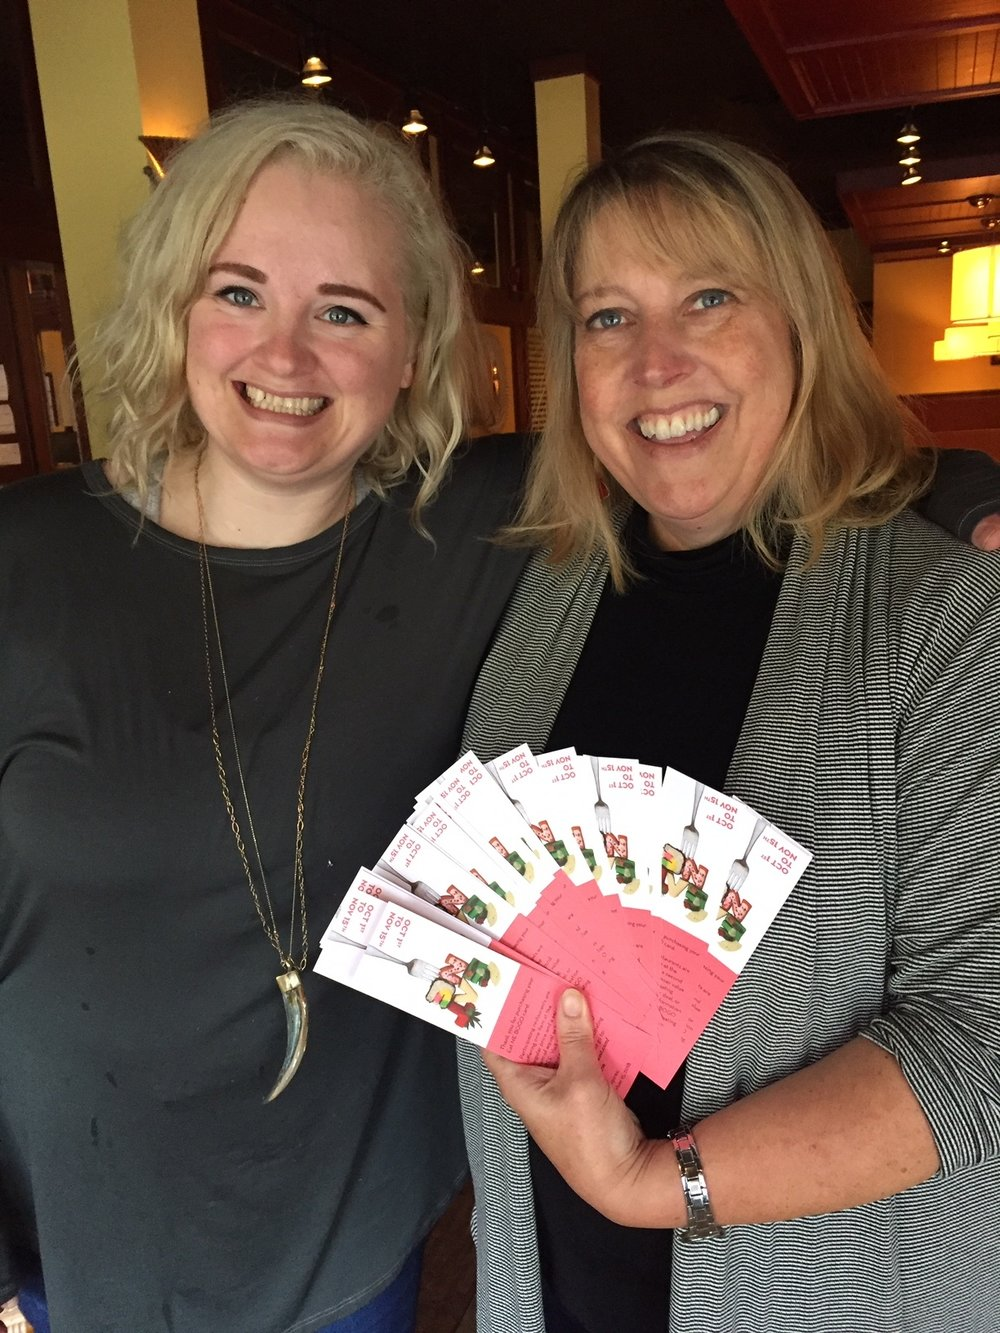 Ginger Hop owner Katey Leitch purchased Eat NE cards for her entire staff